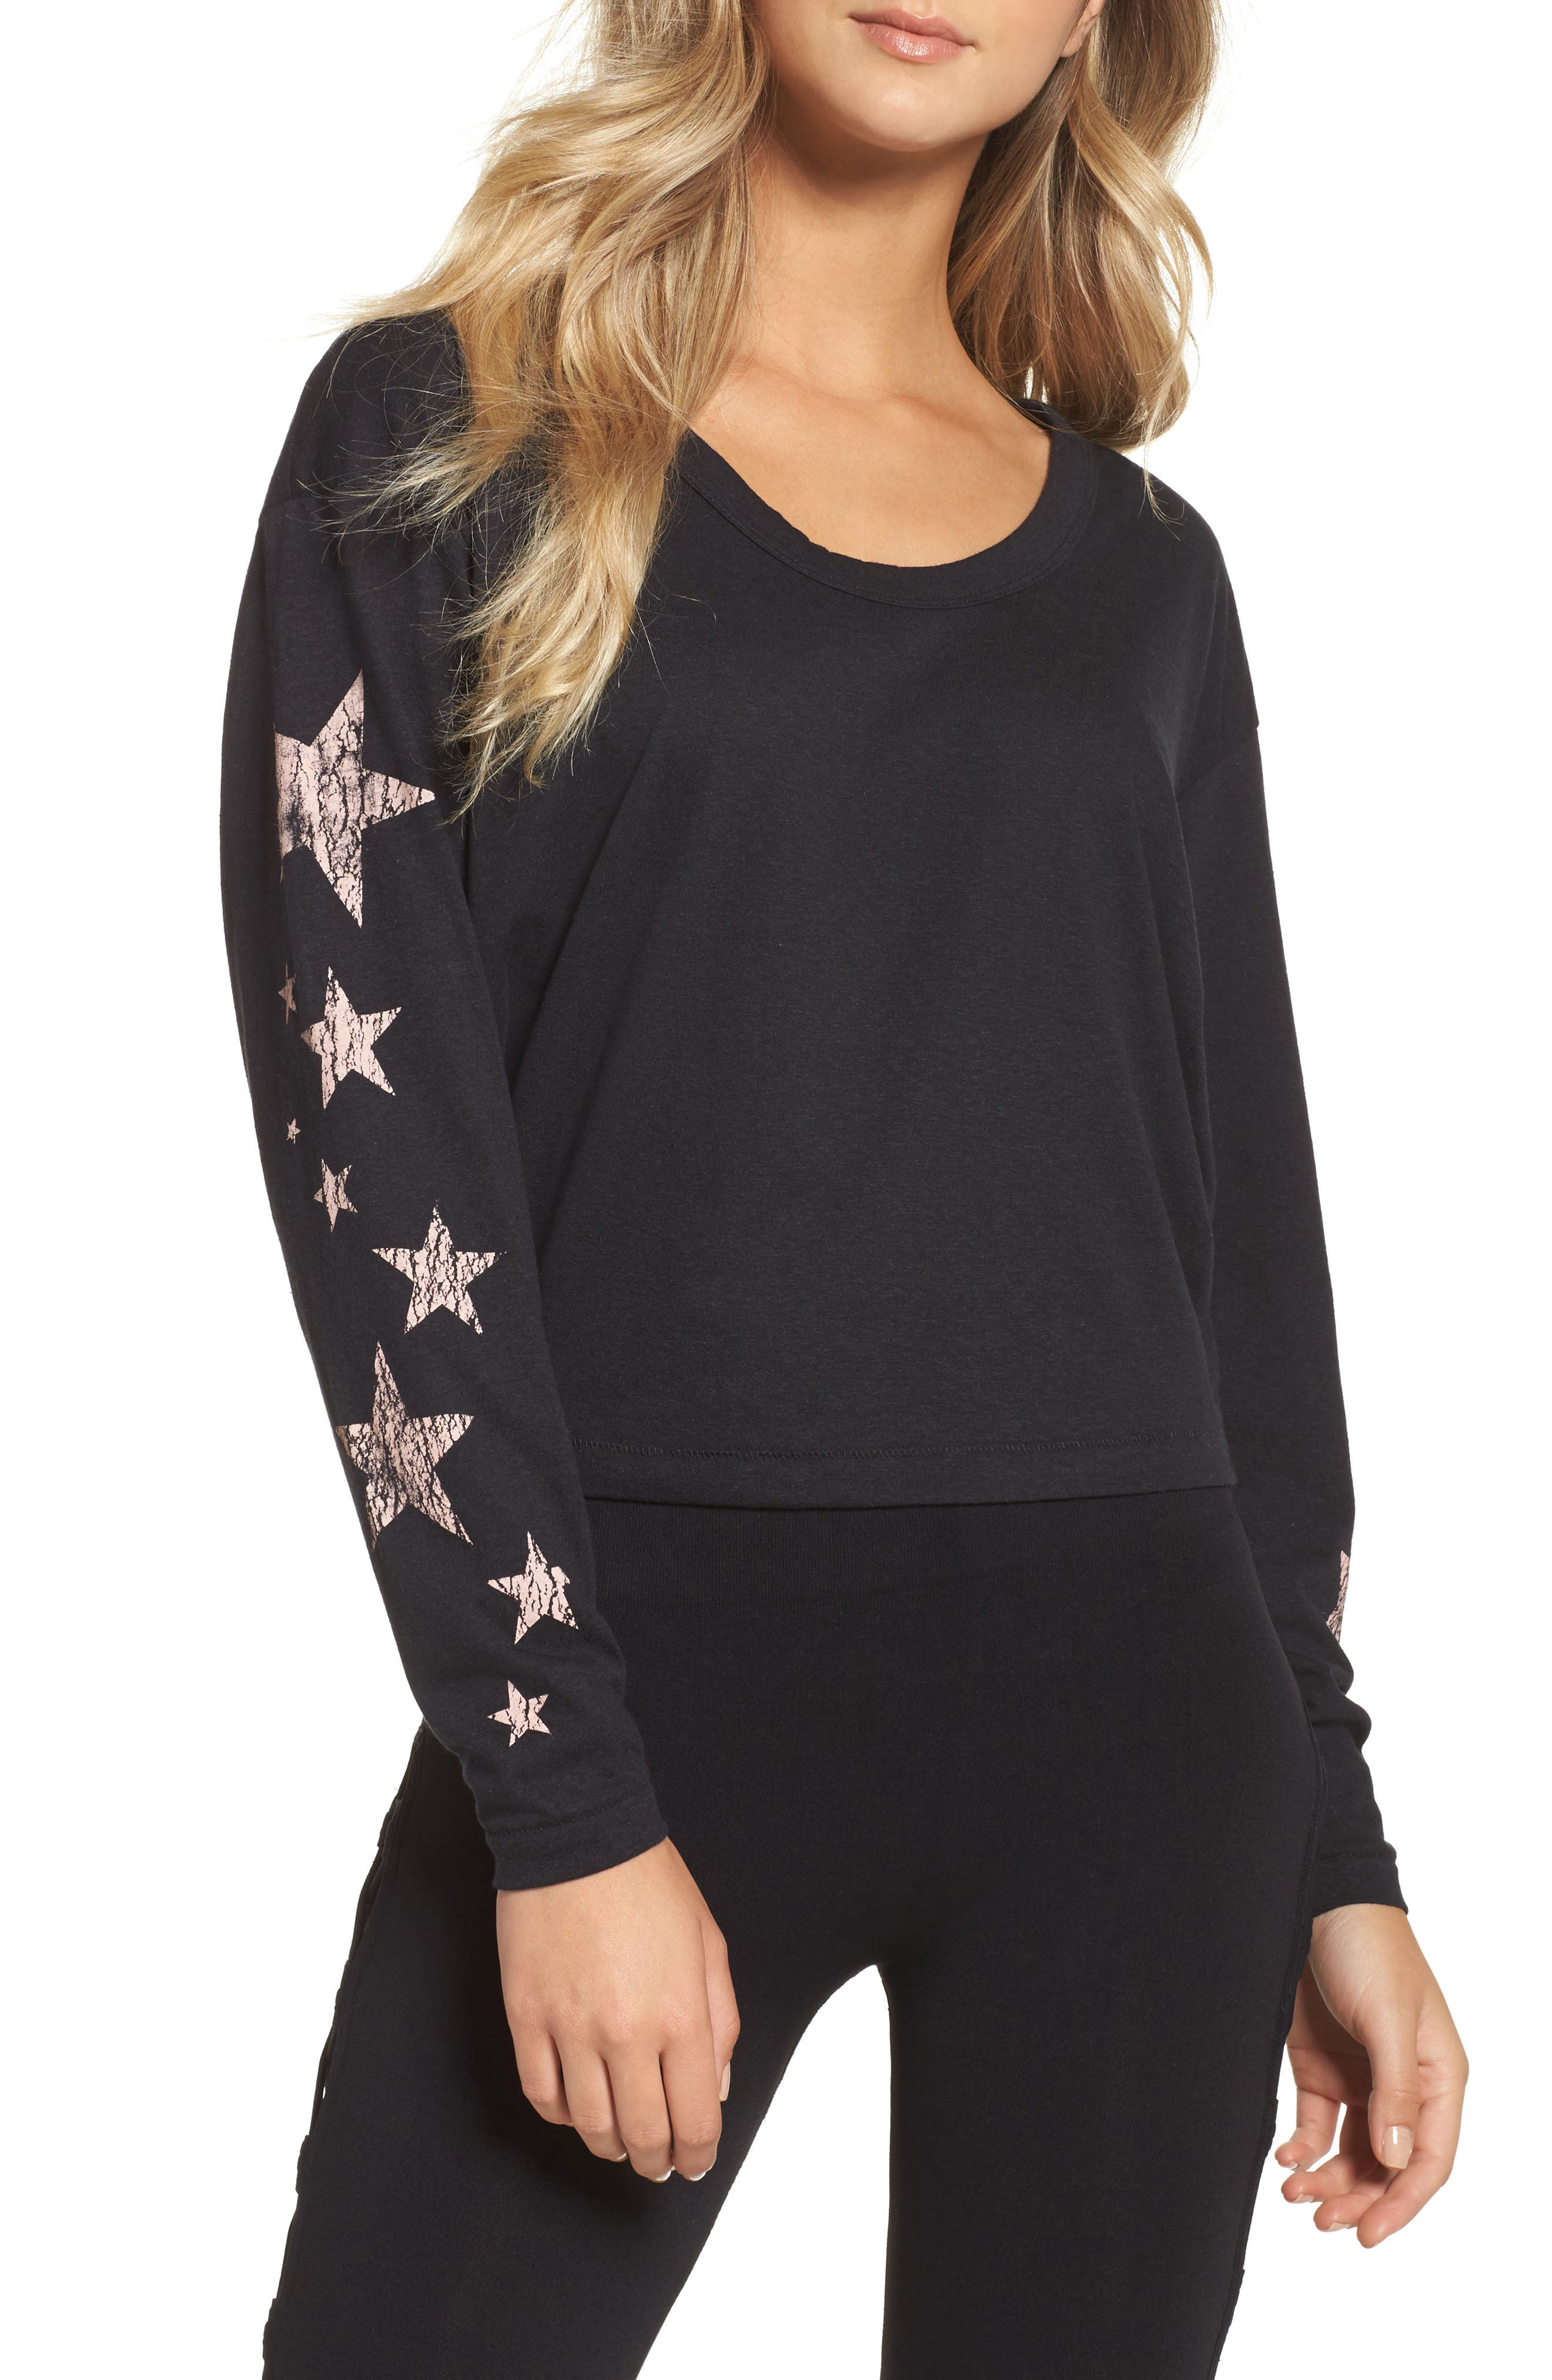 FREE PEOPLE MOVEMENT Melrose Star Graphic Top, Main, color, 001